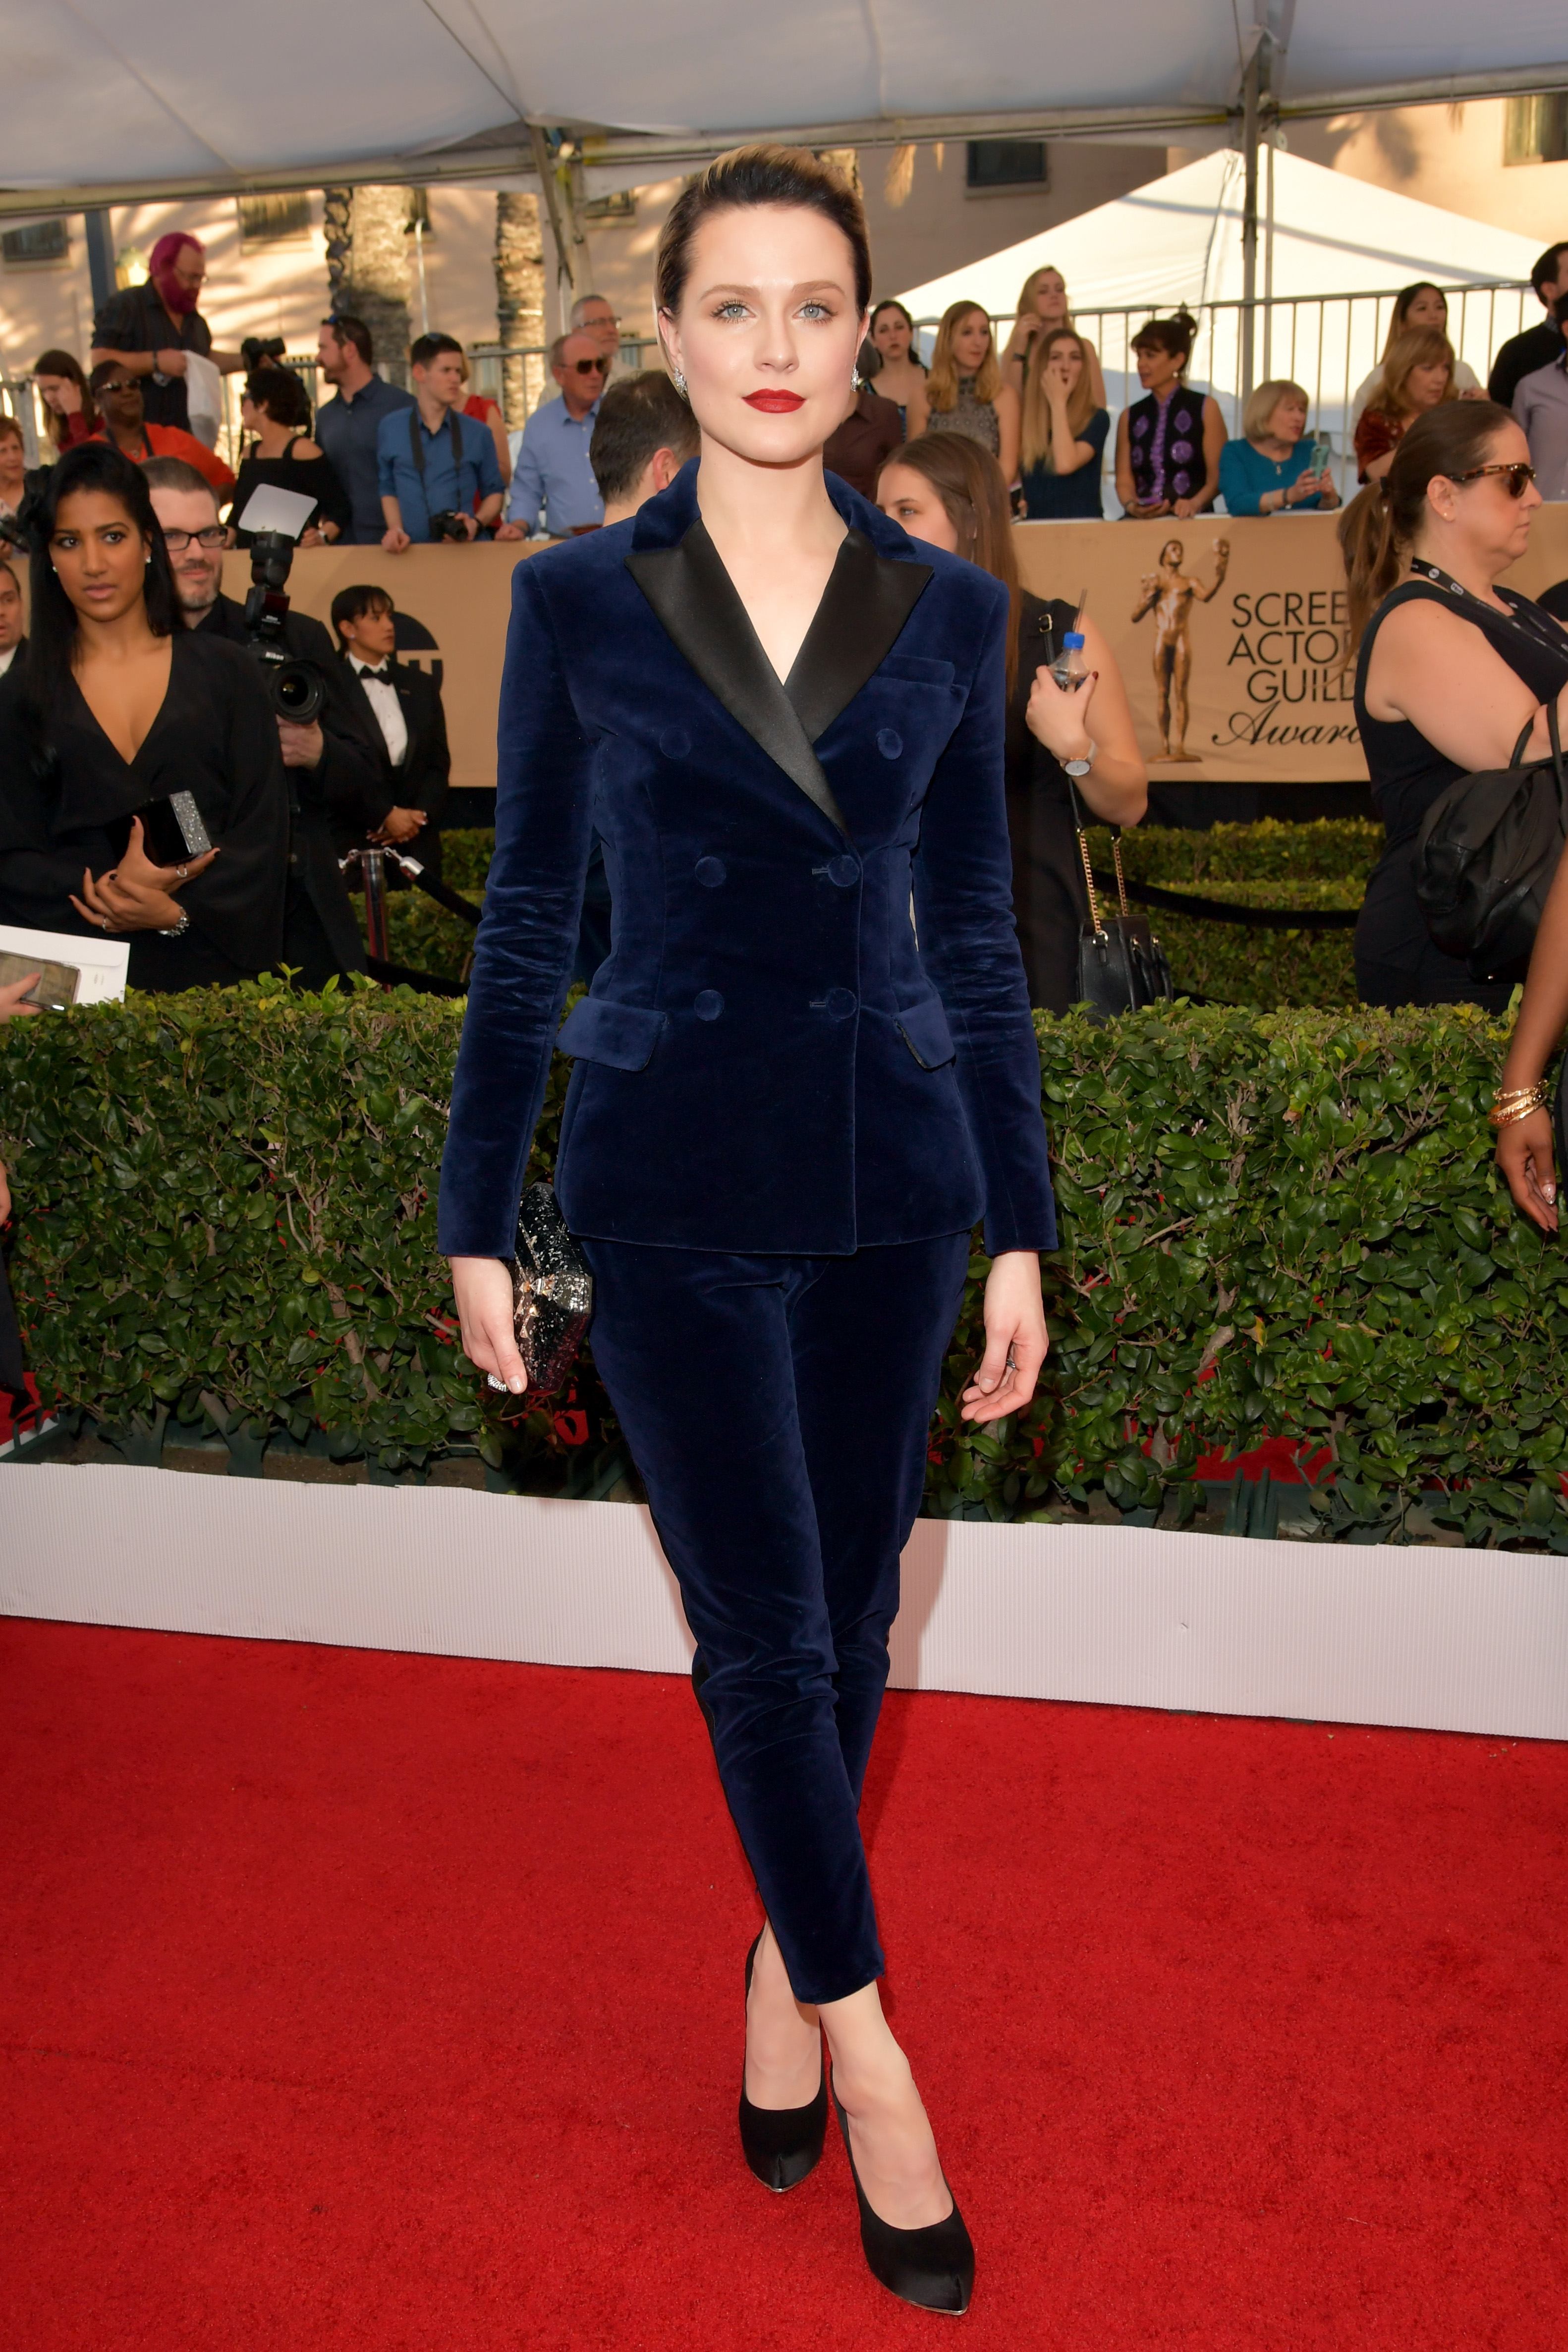 Actor Evan Rachel Wood attends the 23rd Annual Screen Actors Guild Awards on Jan. 29, 2017 in Los Angeles, California.